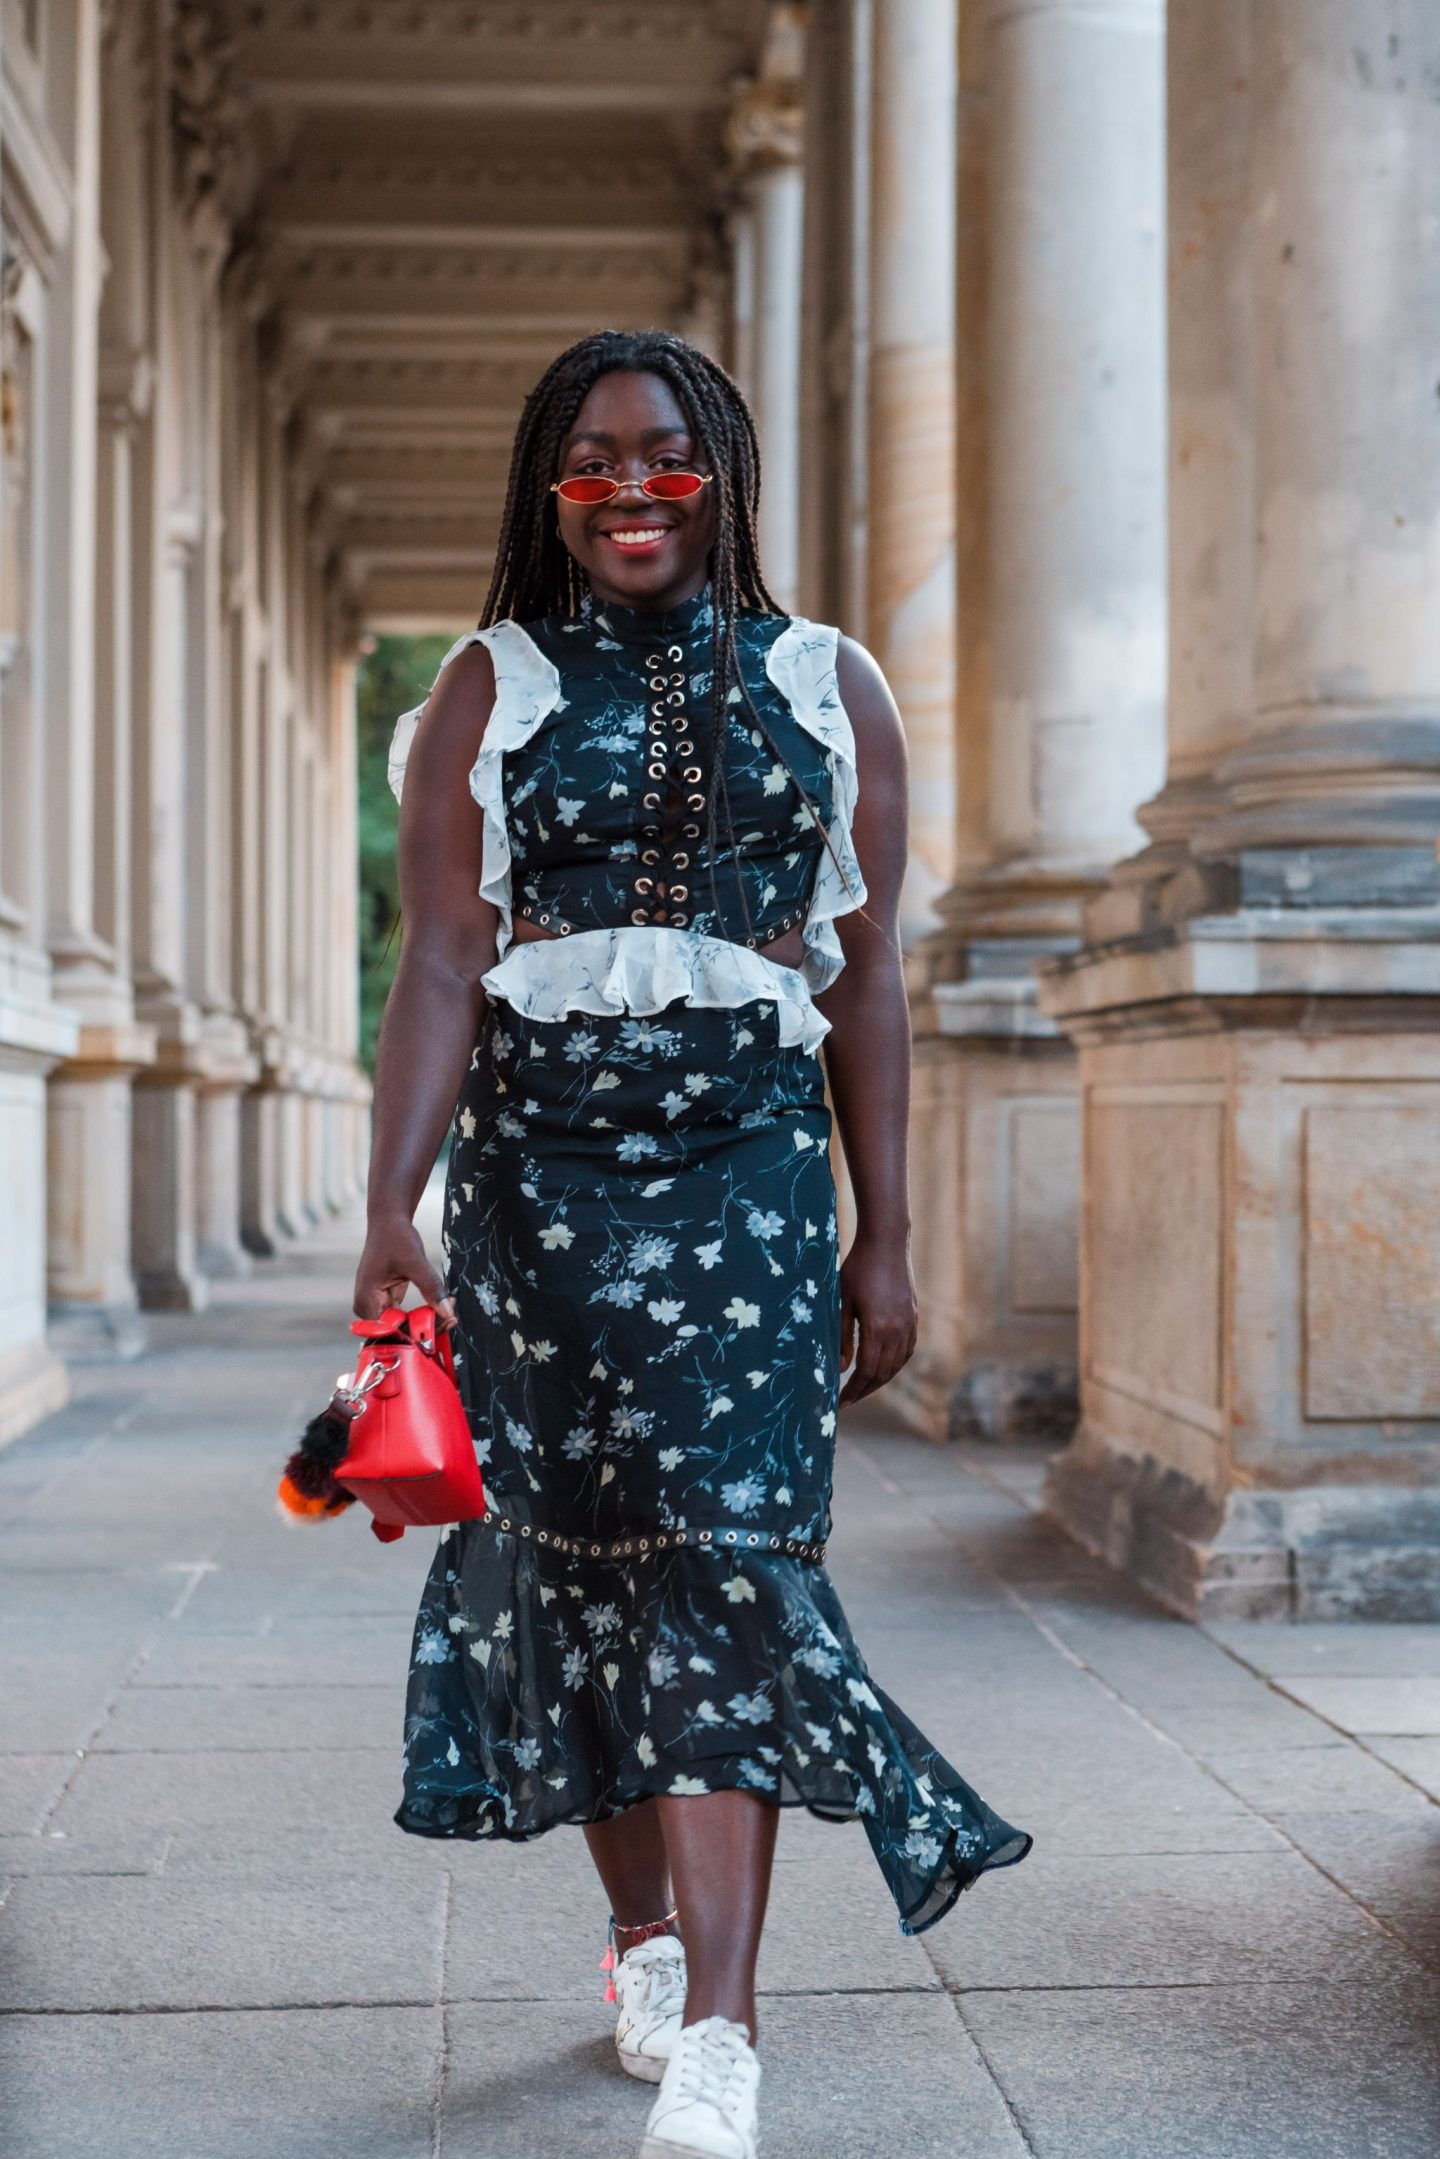 Fashion_Week_Streetstyle_Lois_Opoku_2